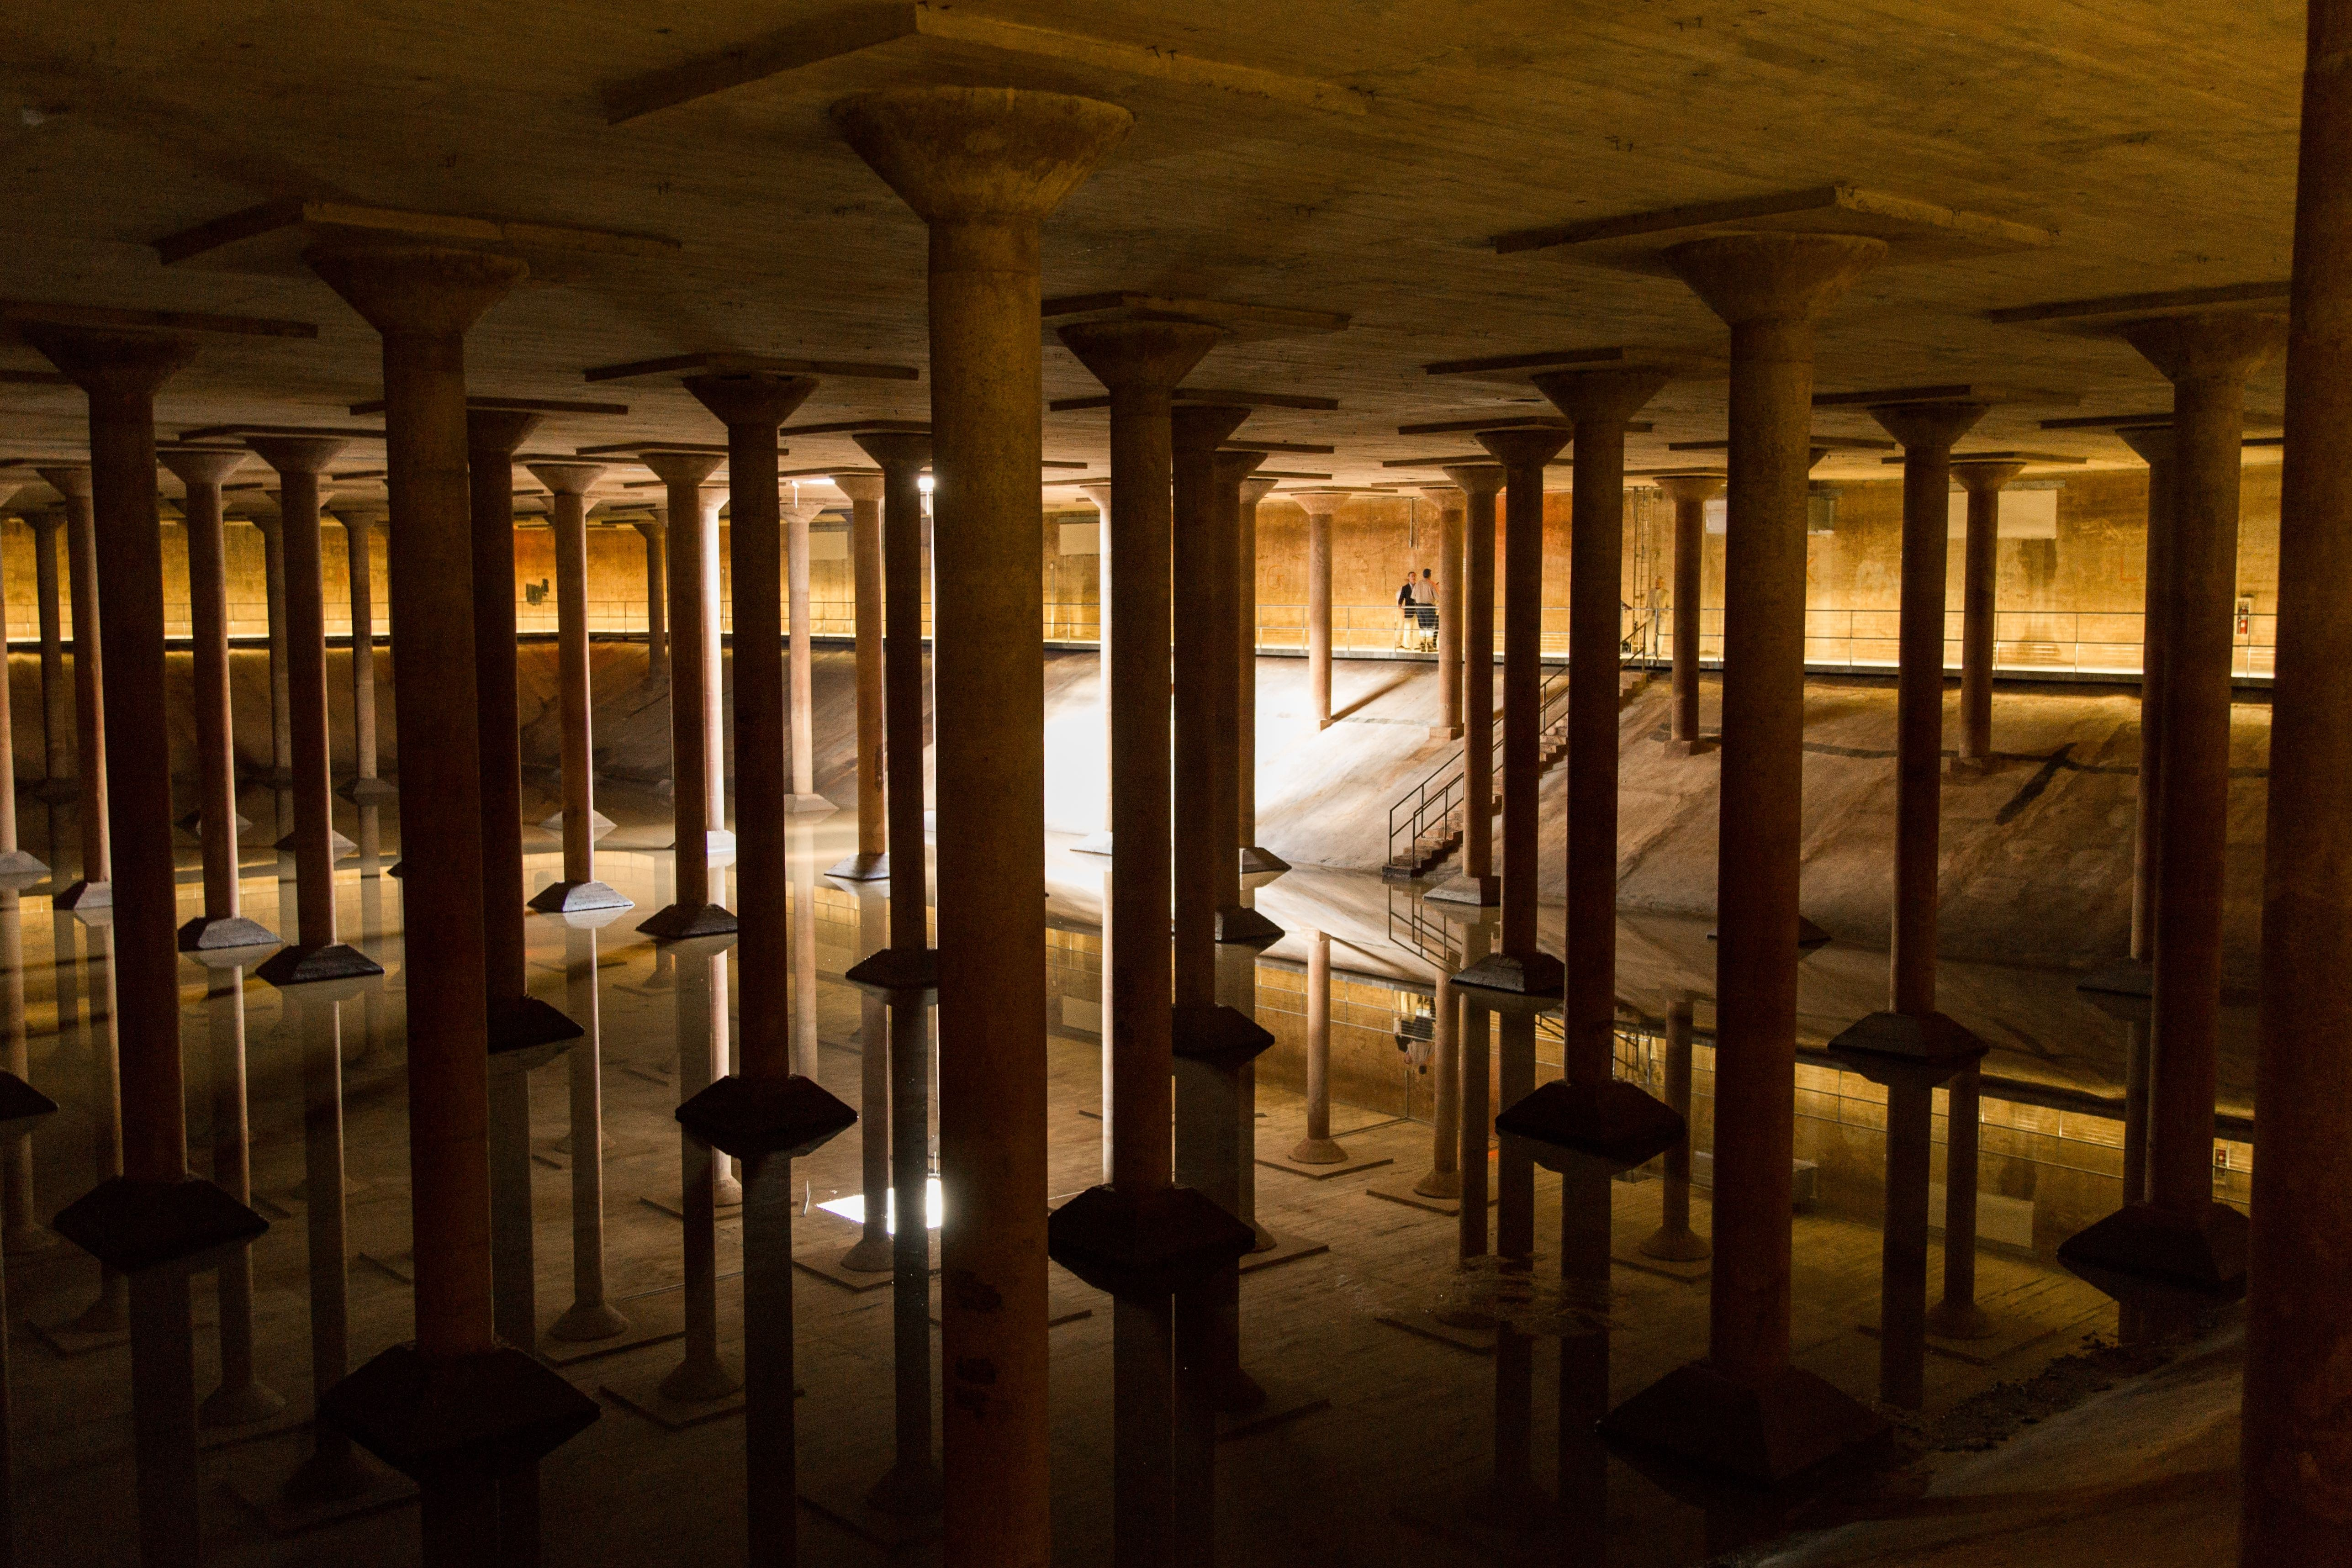 Catch another of Cruz-Diez's works at the Buffalo Bayou Park Cistern.